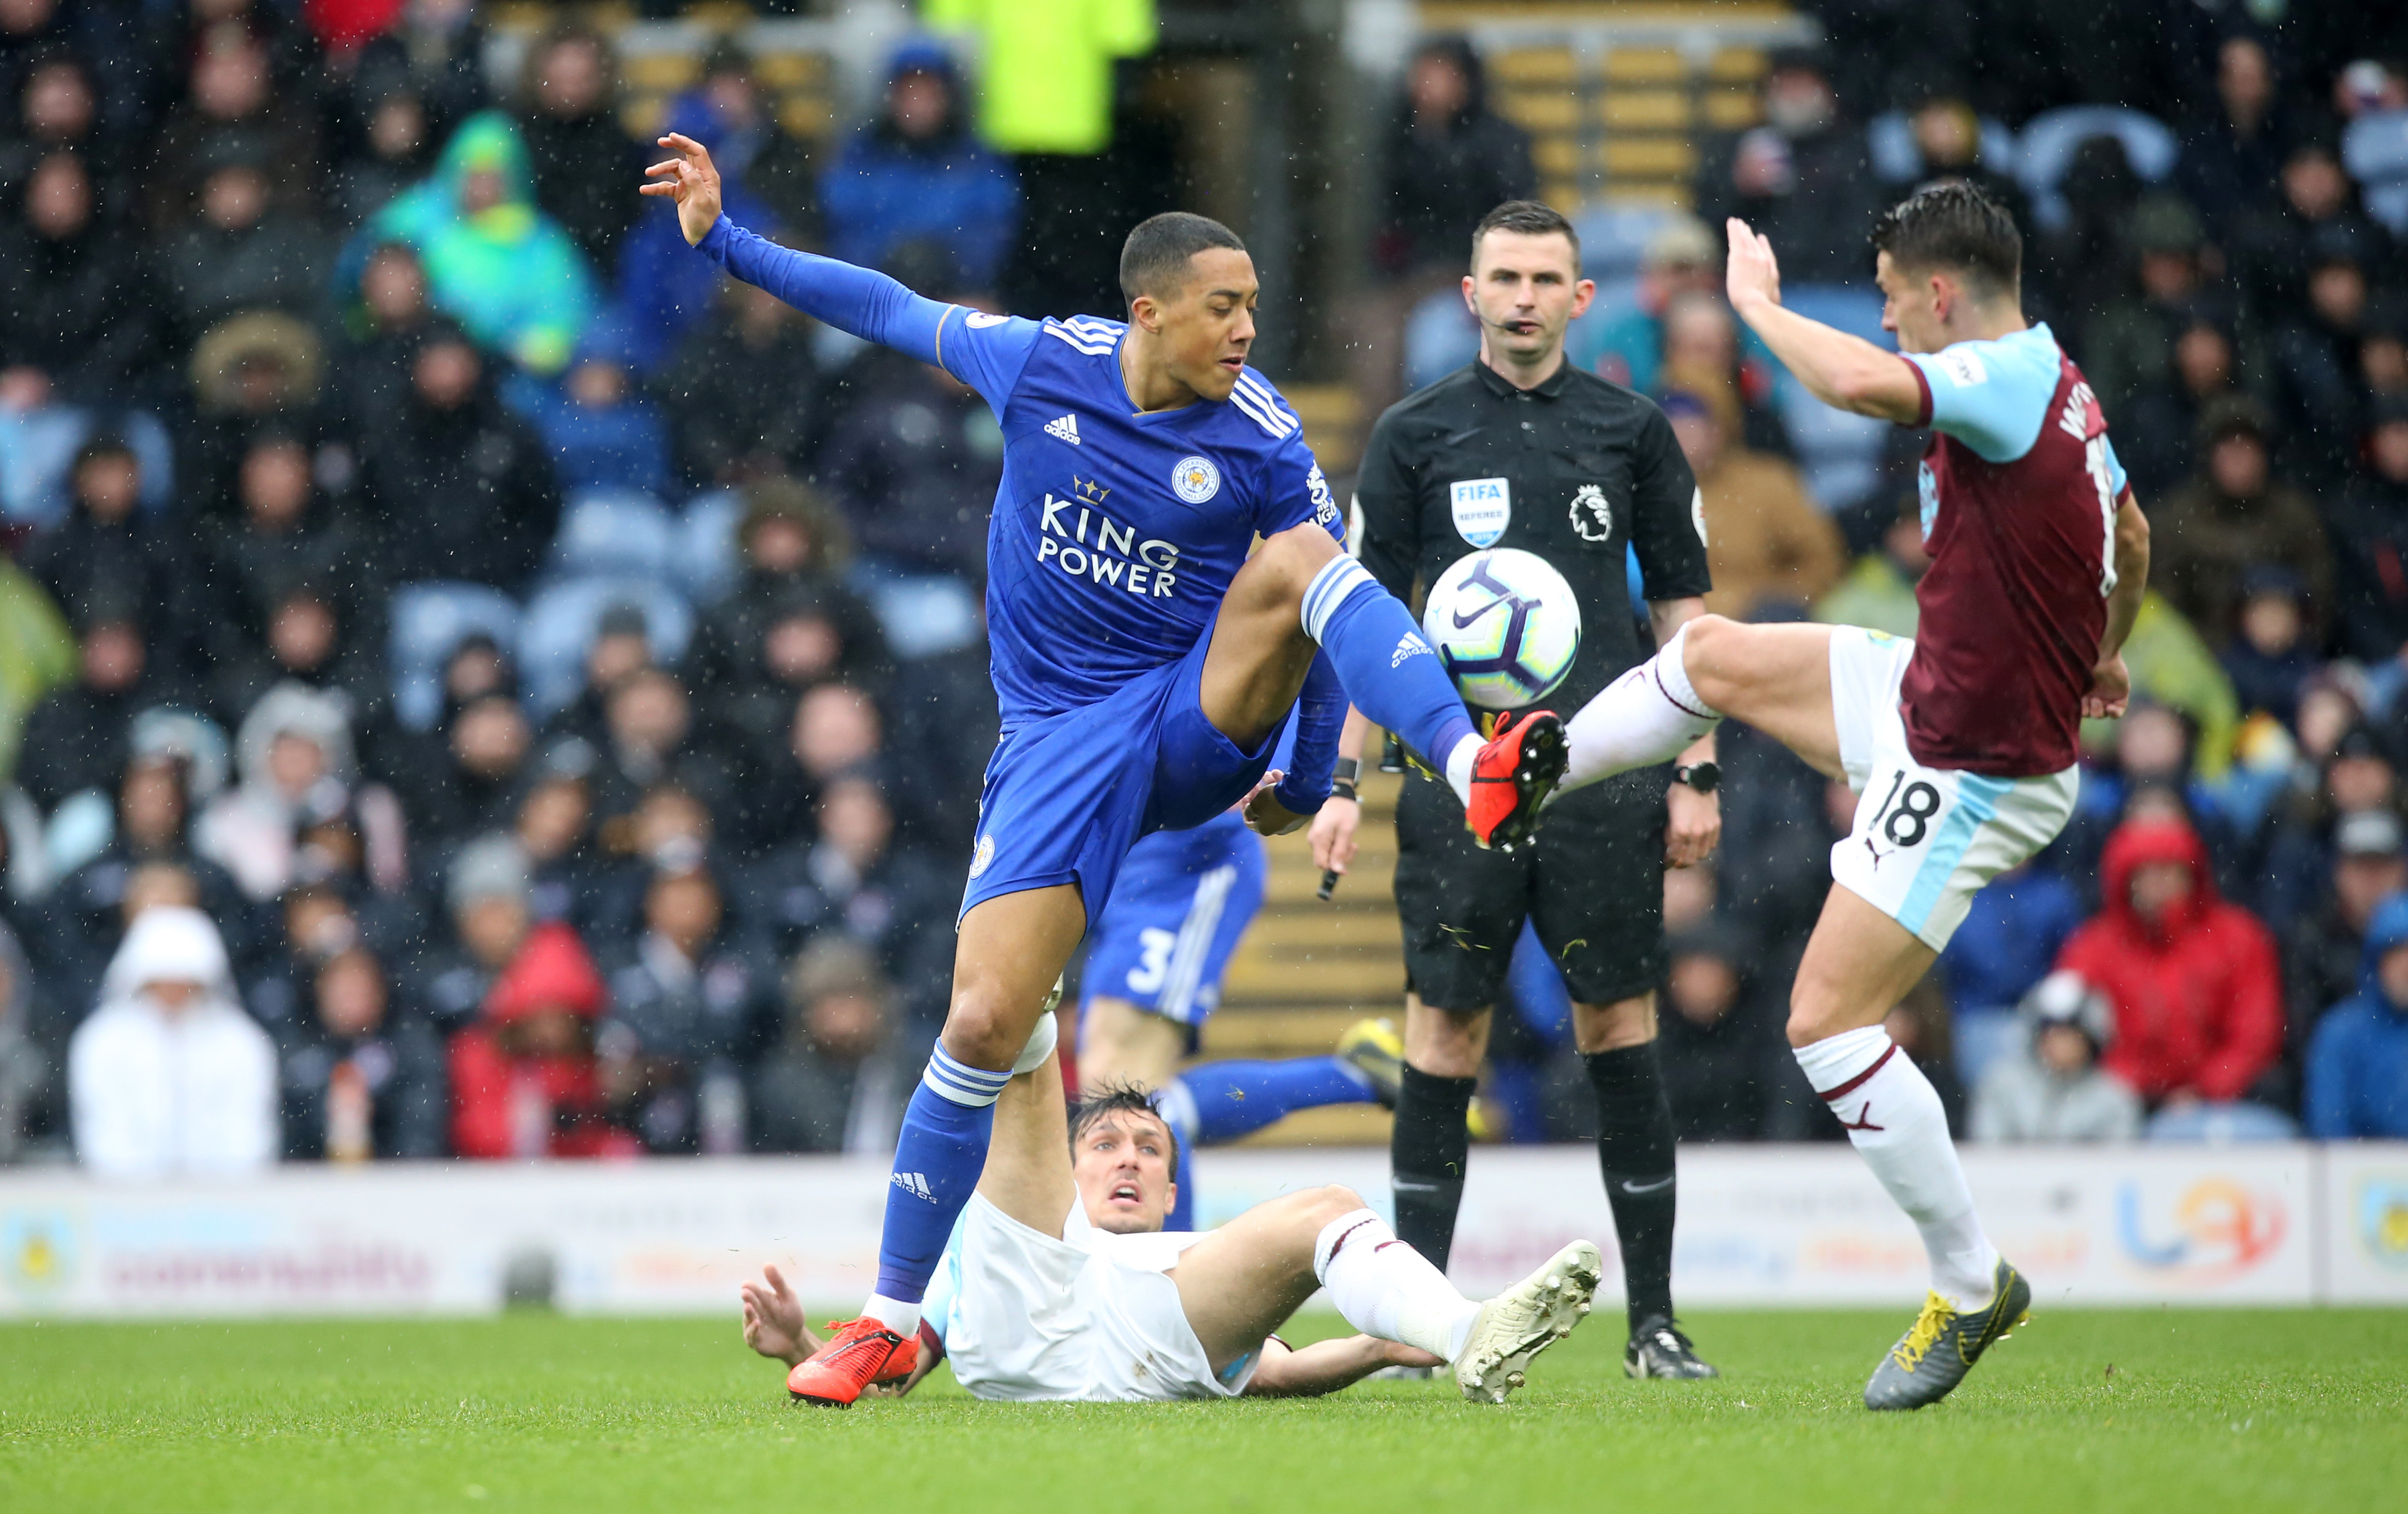 burnley vs leicester city - photo #45